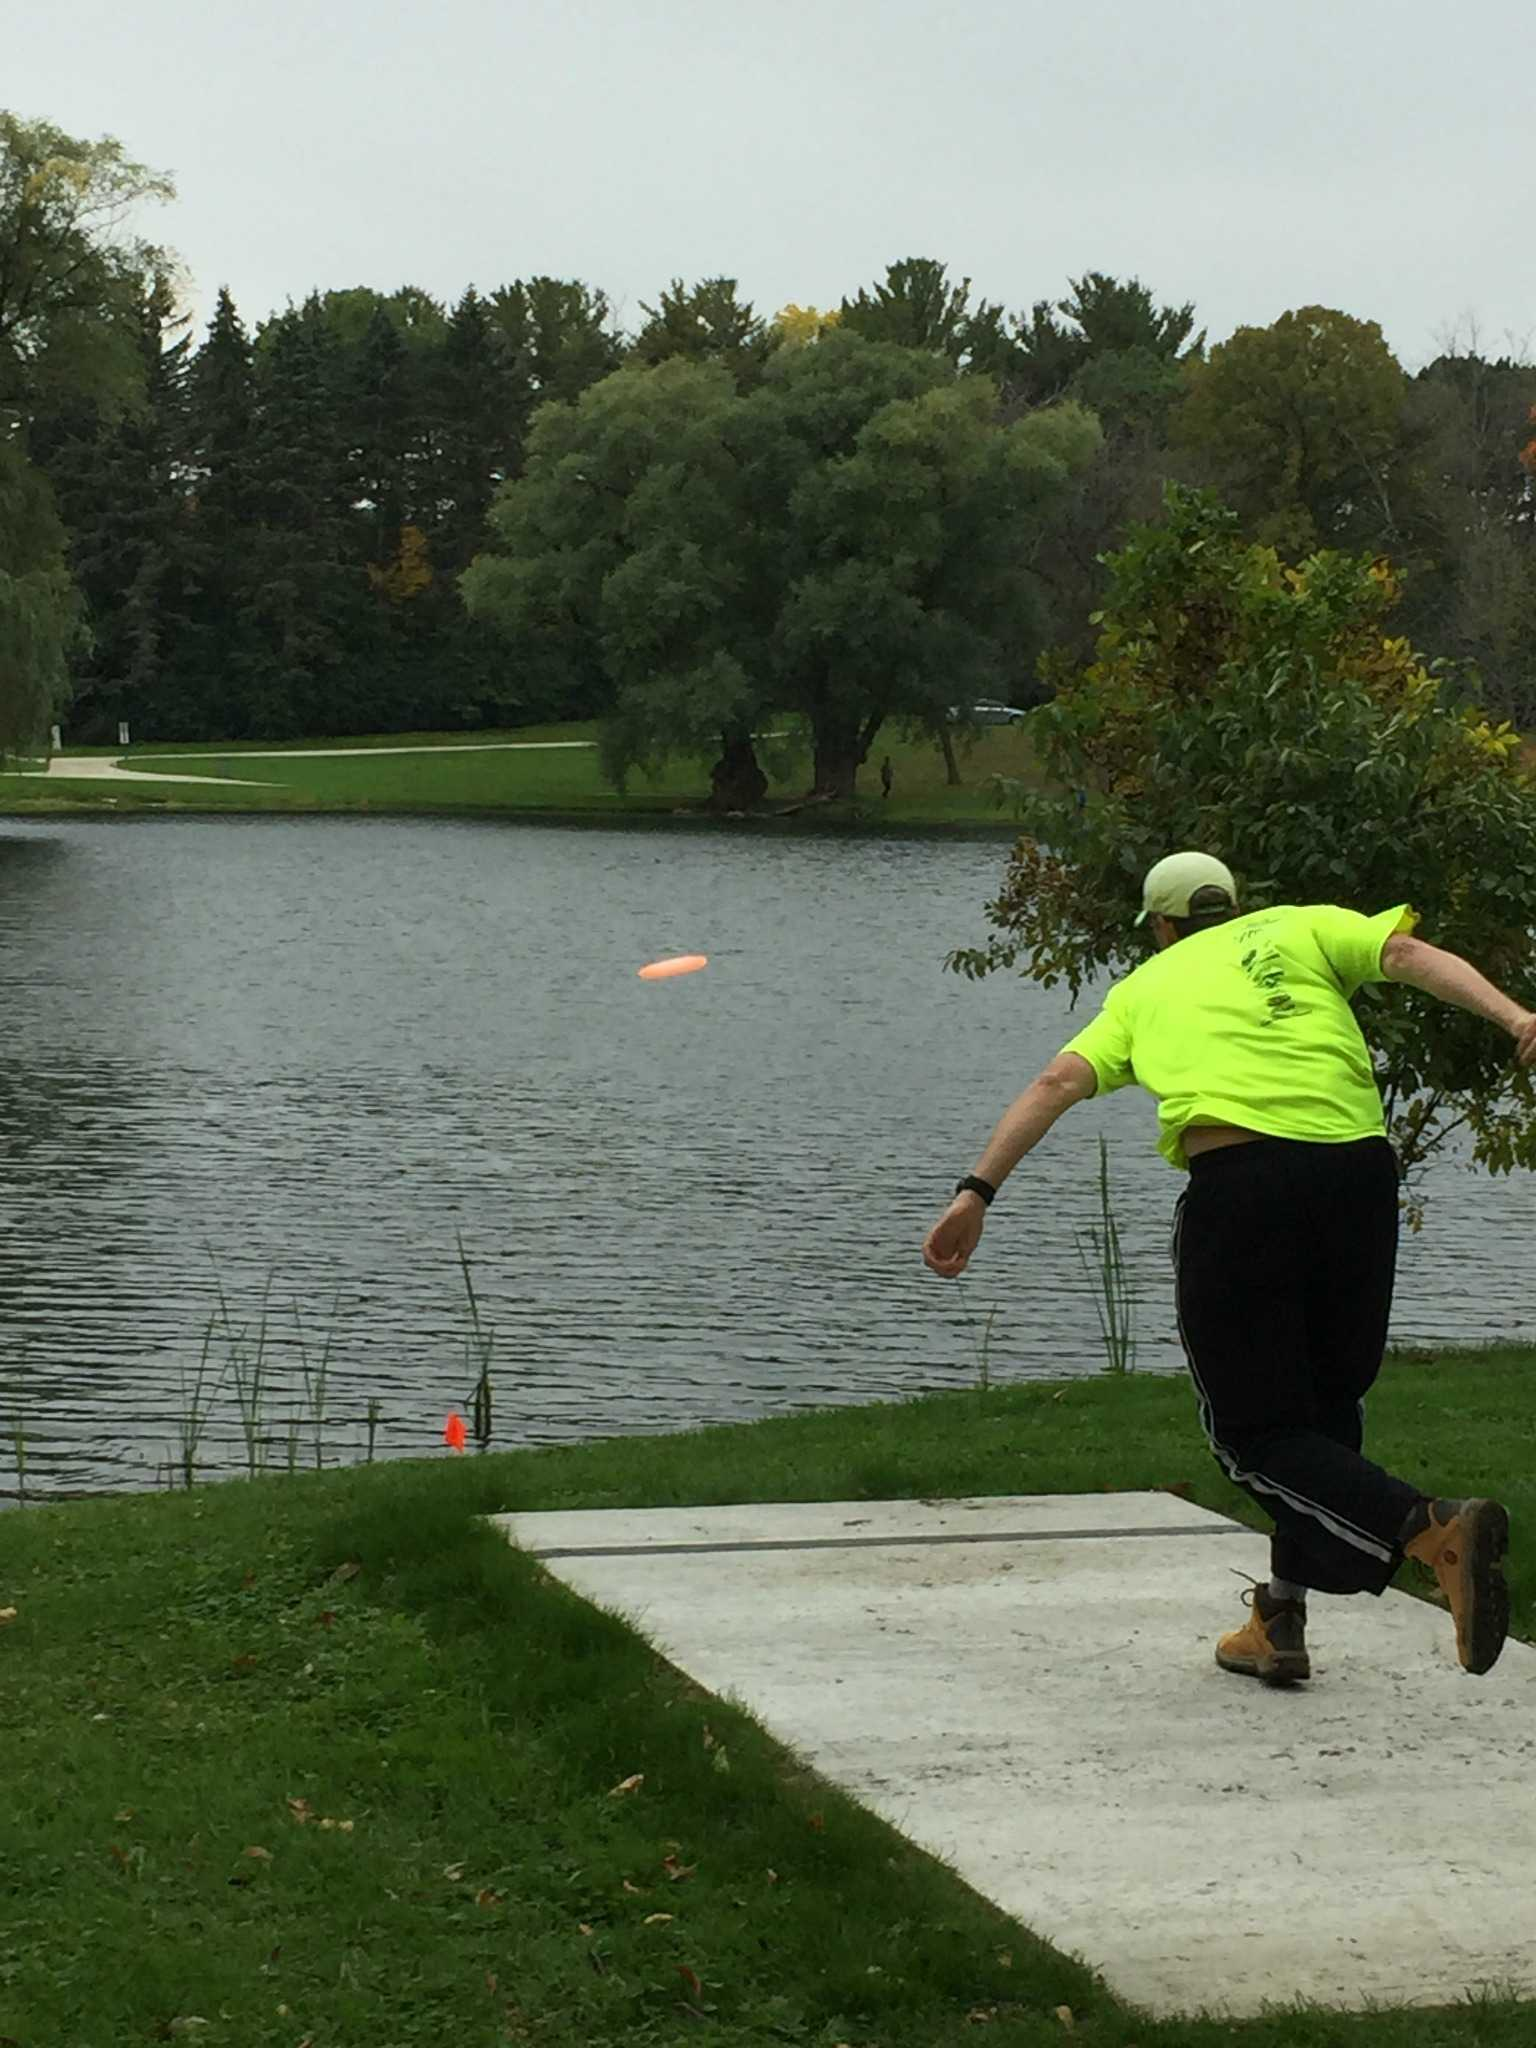 Daniel Zich launches a disc across the lake during his Disc Golf match